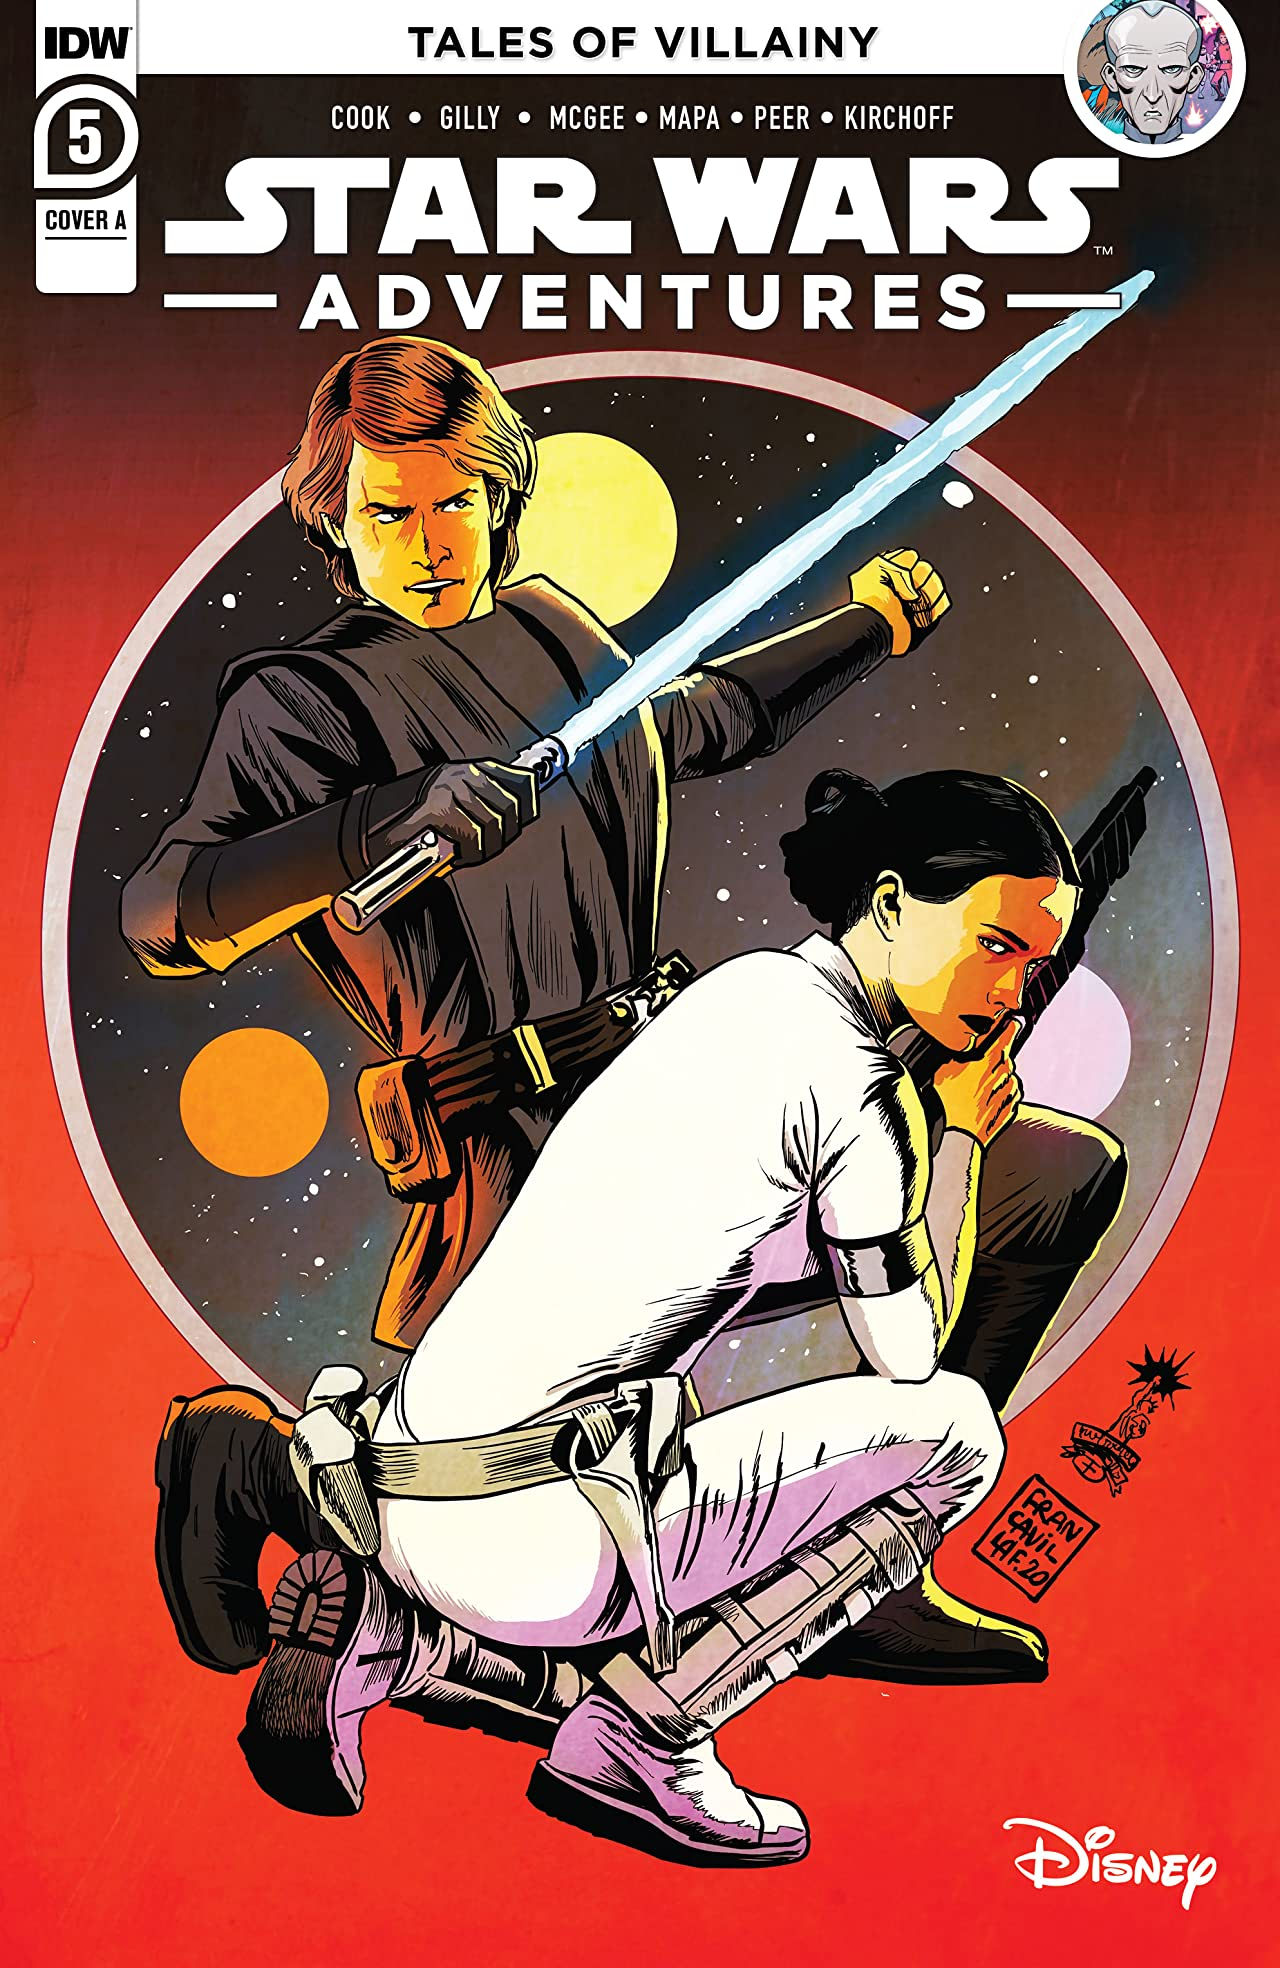 Star Wars Adventures (2020-) #5